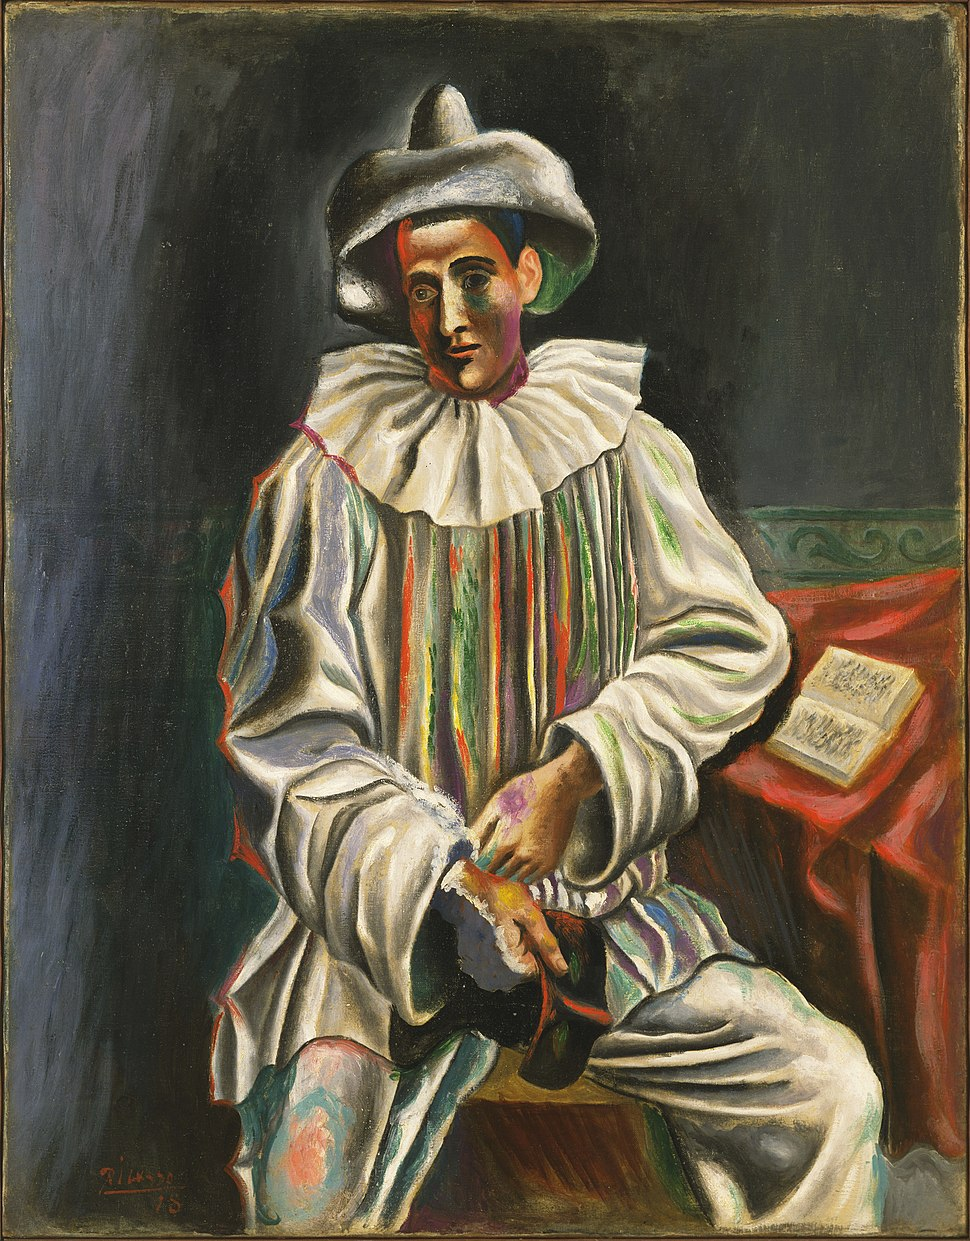 Pablo Picasso, 1918, Pierrot, oil on canvas, 92.7 x 73 cm, Museum of Modern Art